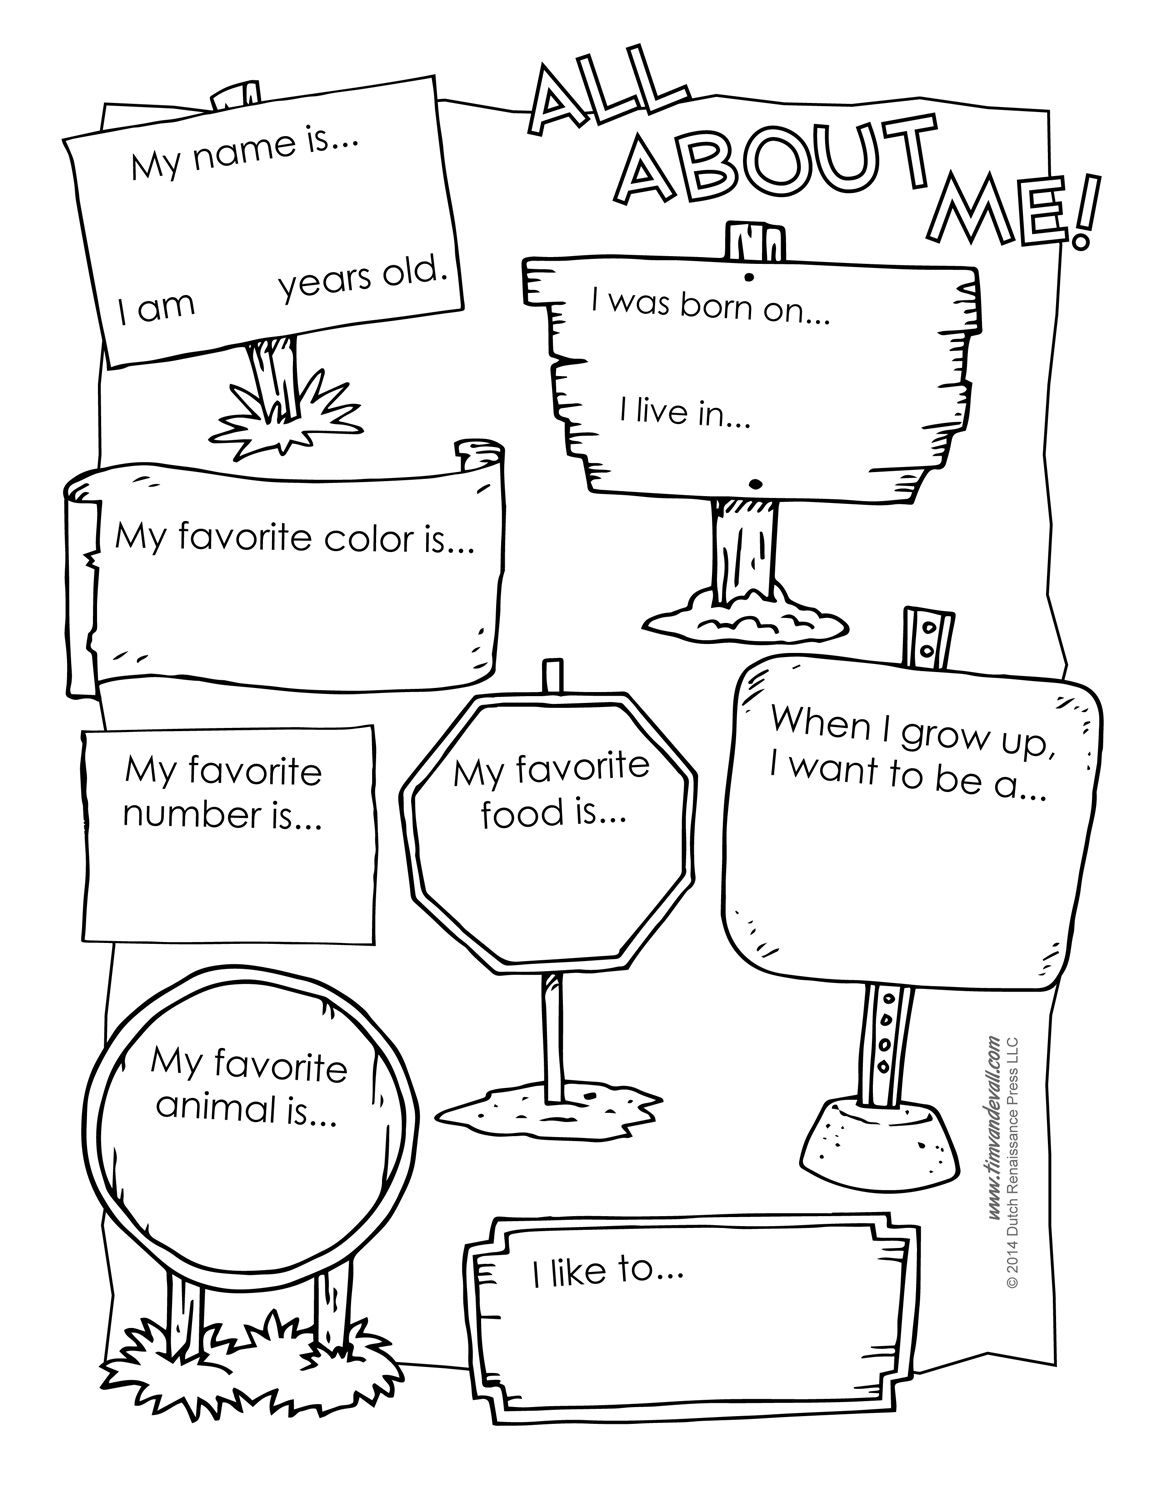 All About Me Worksheet Printable   All about me worksheet [ 1500 x 1159 Pixel ]